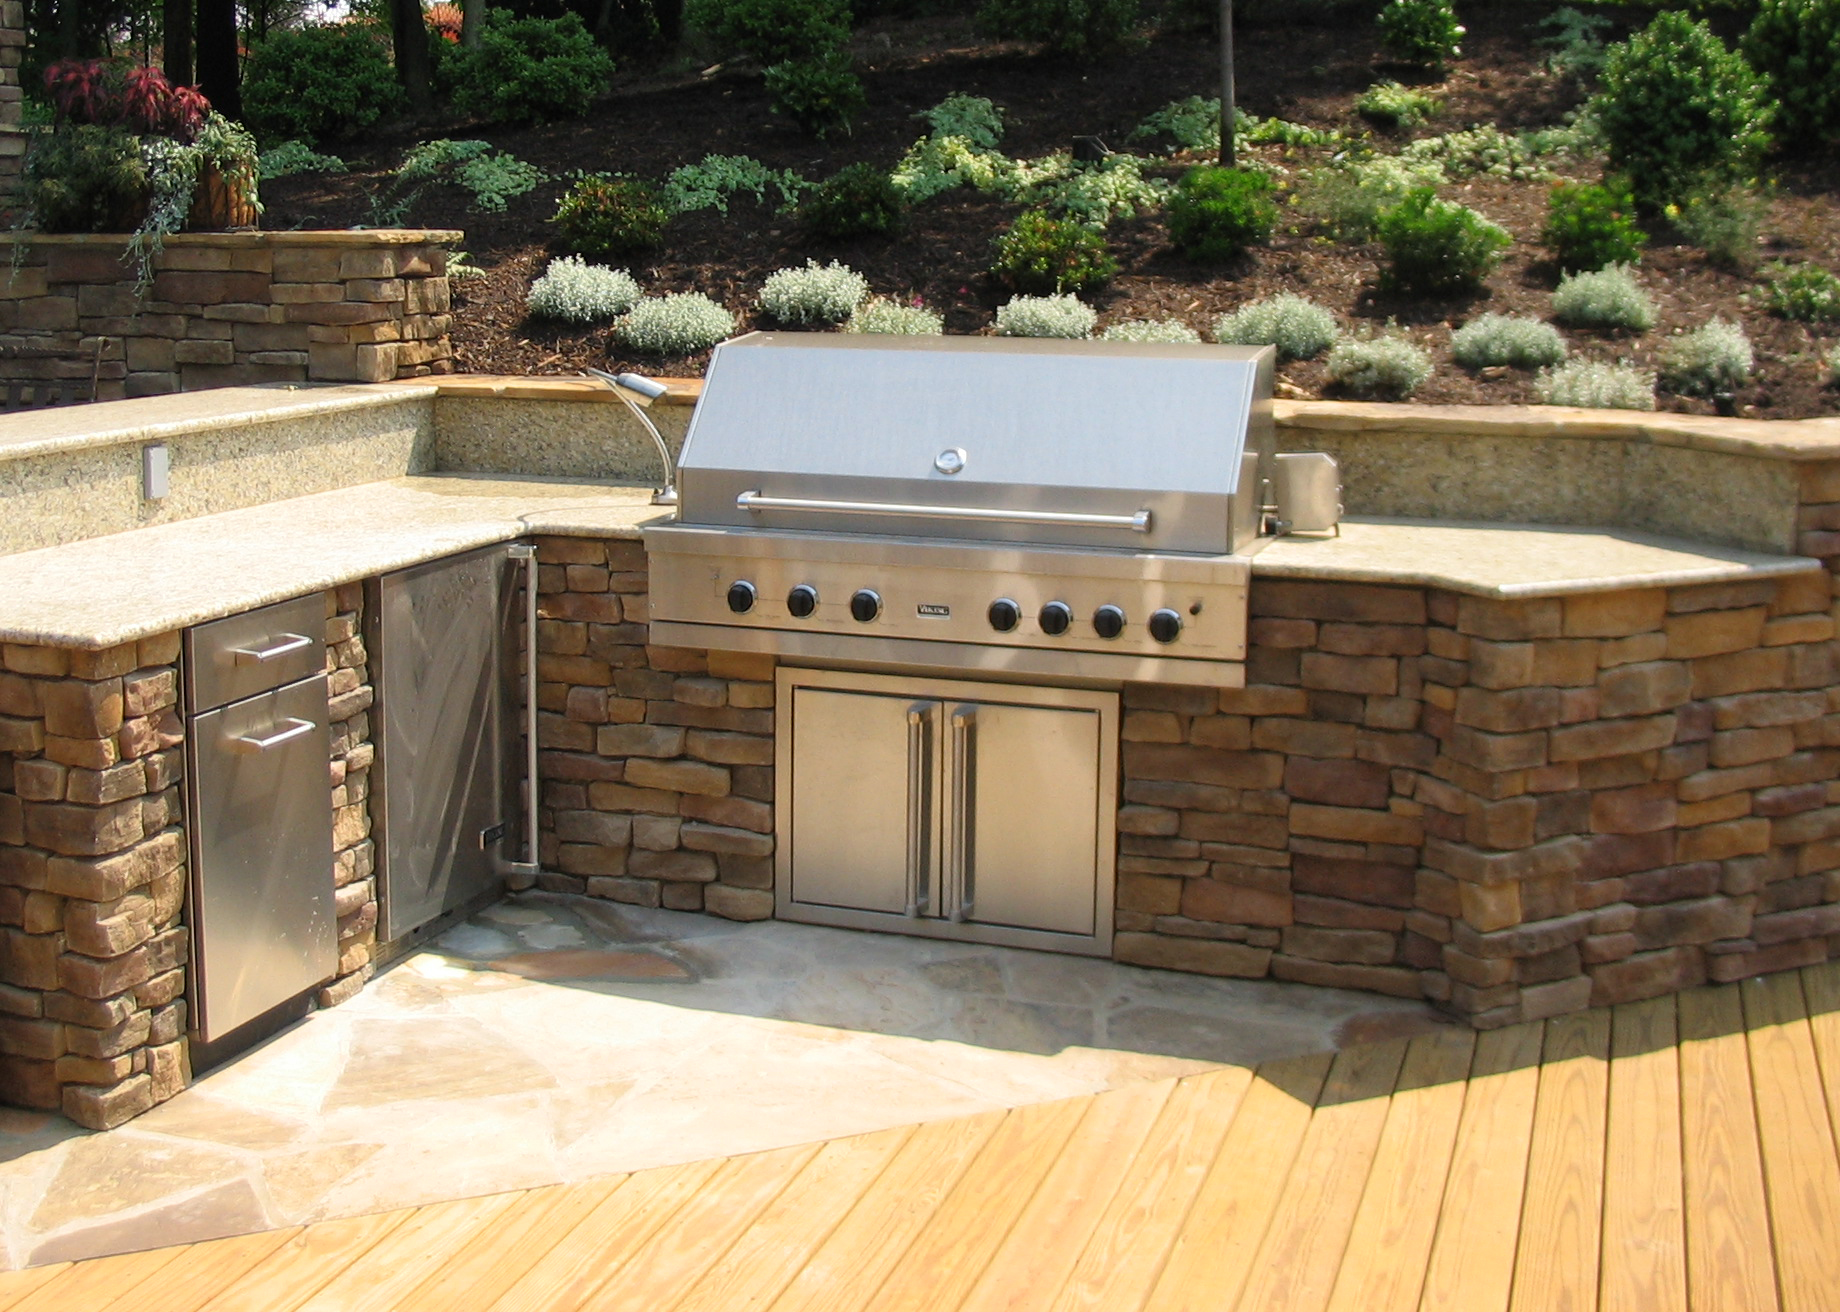 Designing an outdoor kitchen revolutionary gardens for Outdoor kitchen blueprints